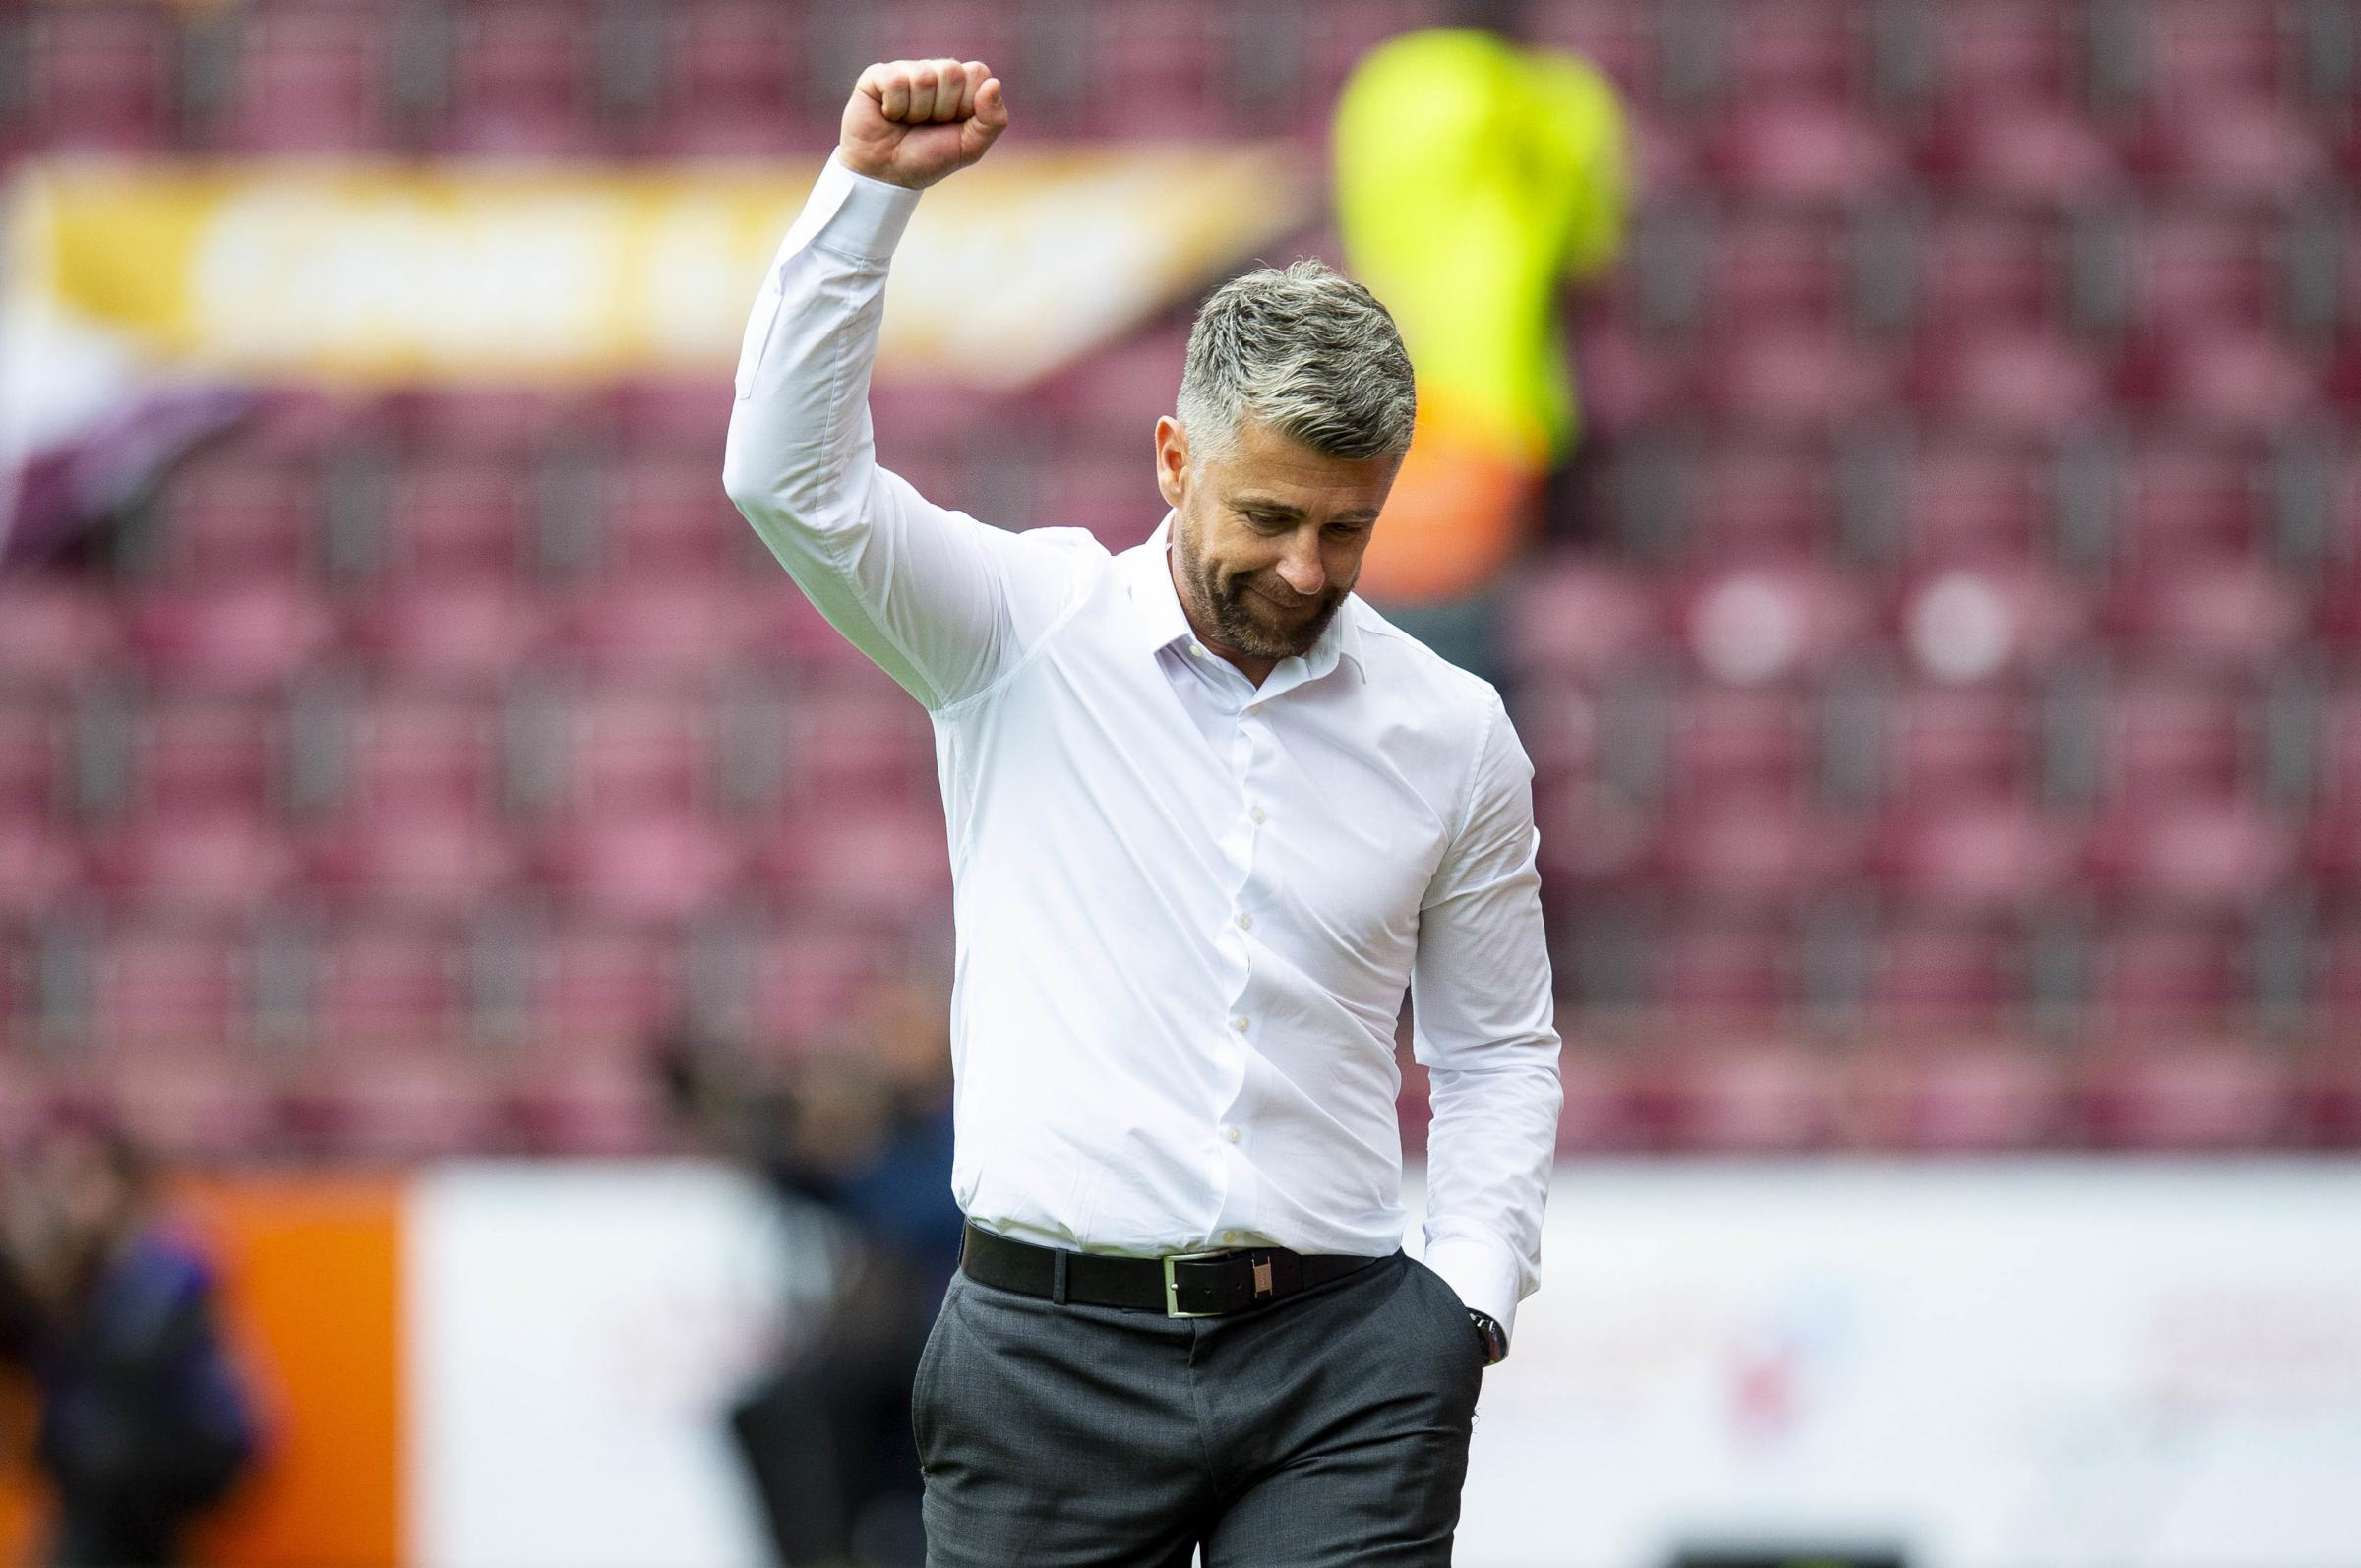 Motherwell boss Stephen Robinson tries not to add fuel to the fire as speculation mounts over his future